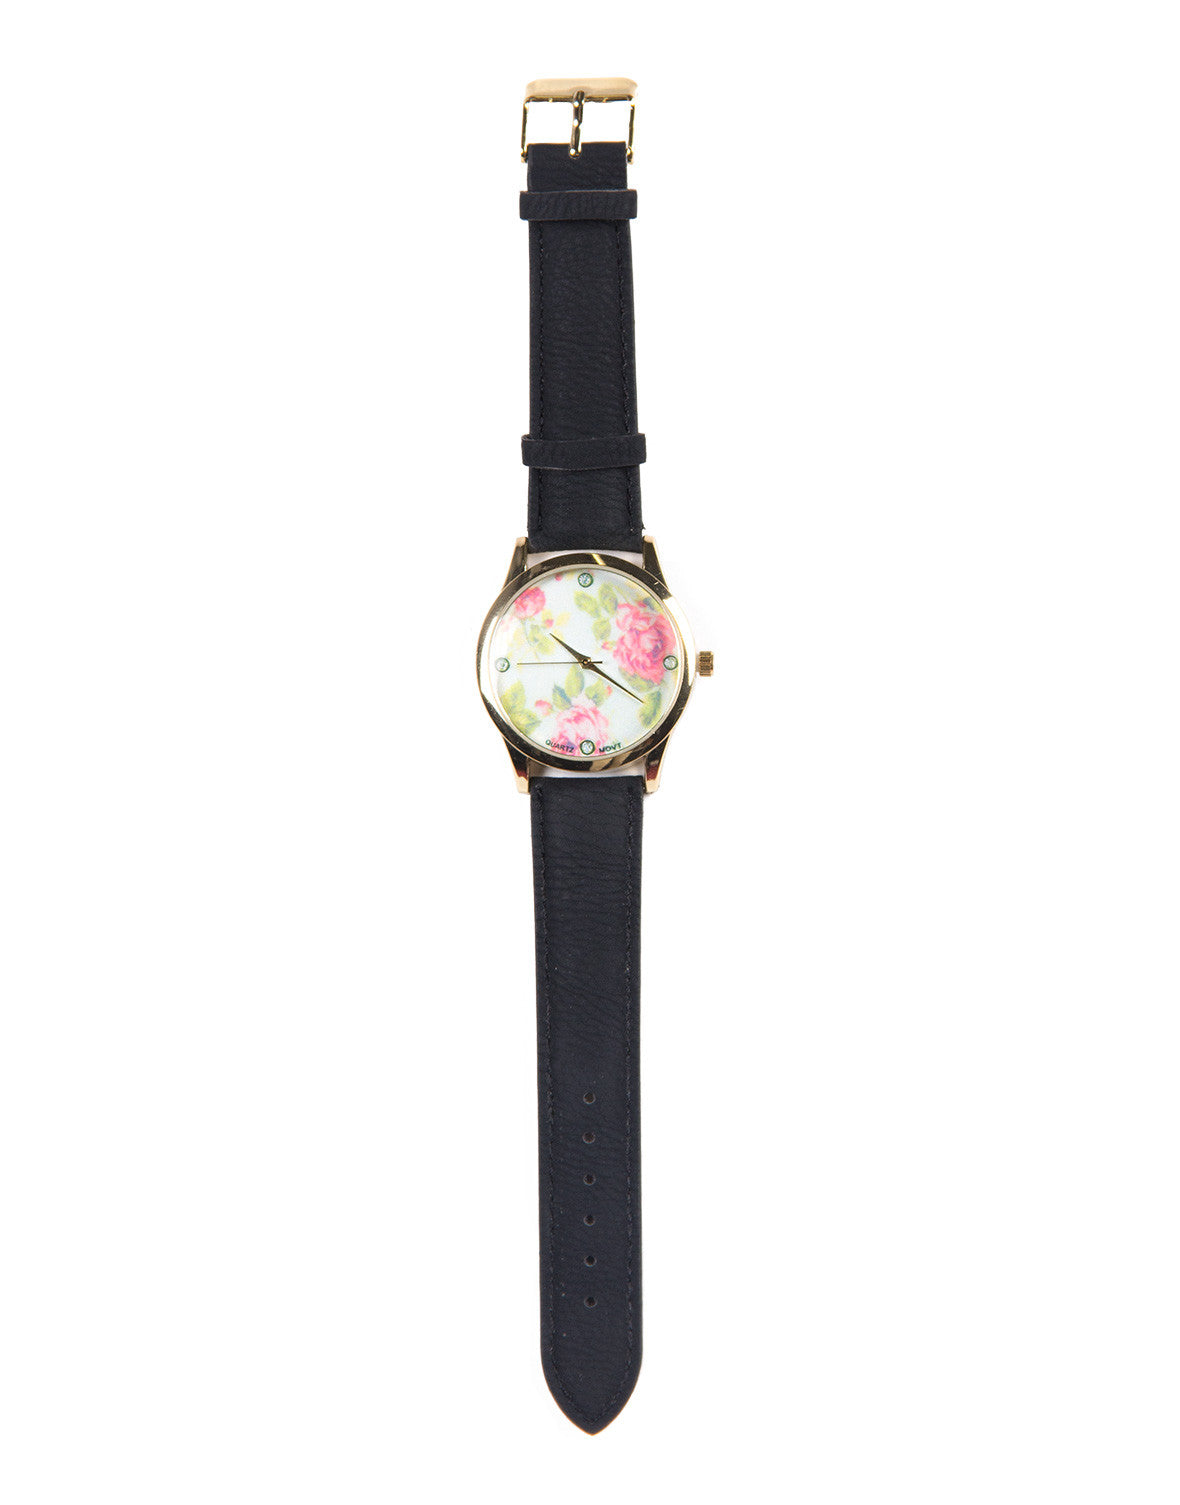 Floral Leather Watch - Black